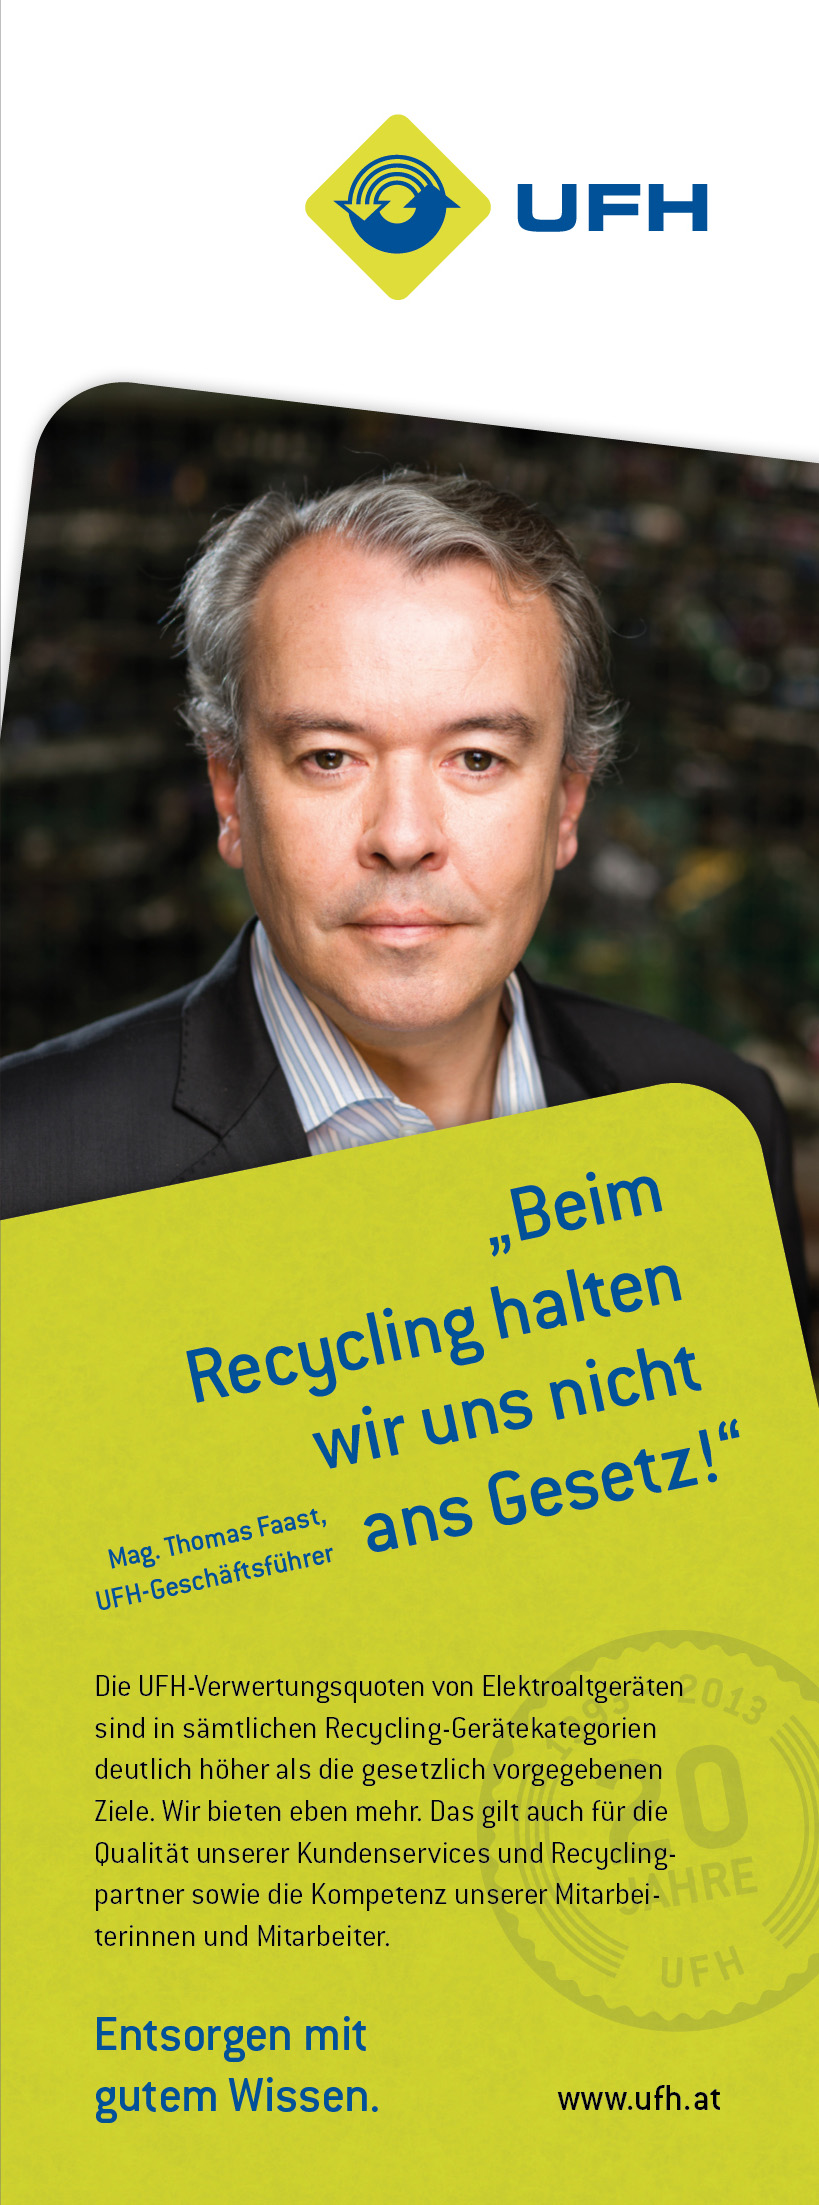 UFH - Recycling